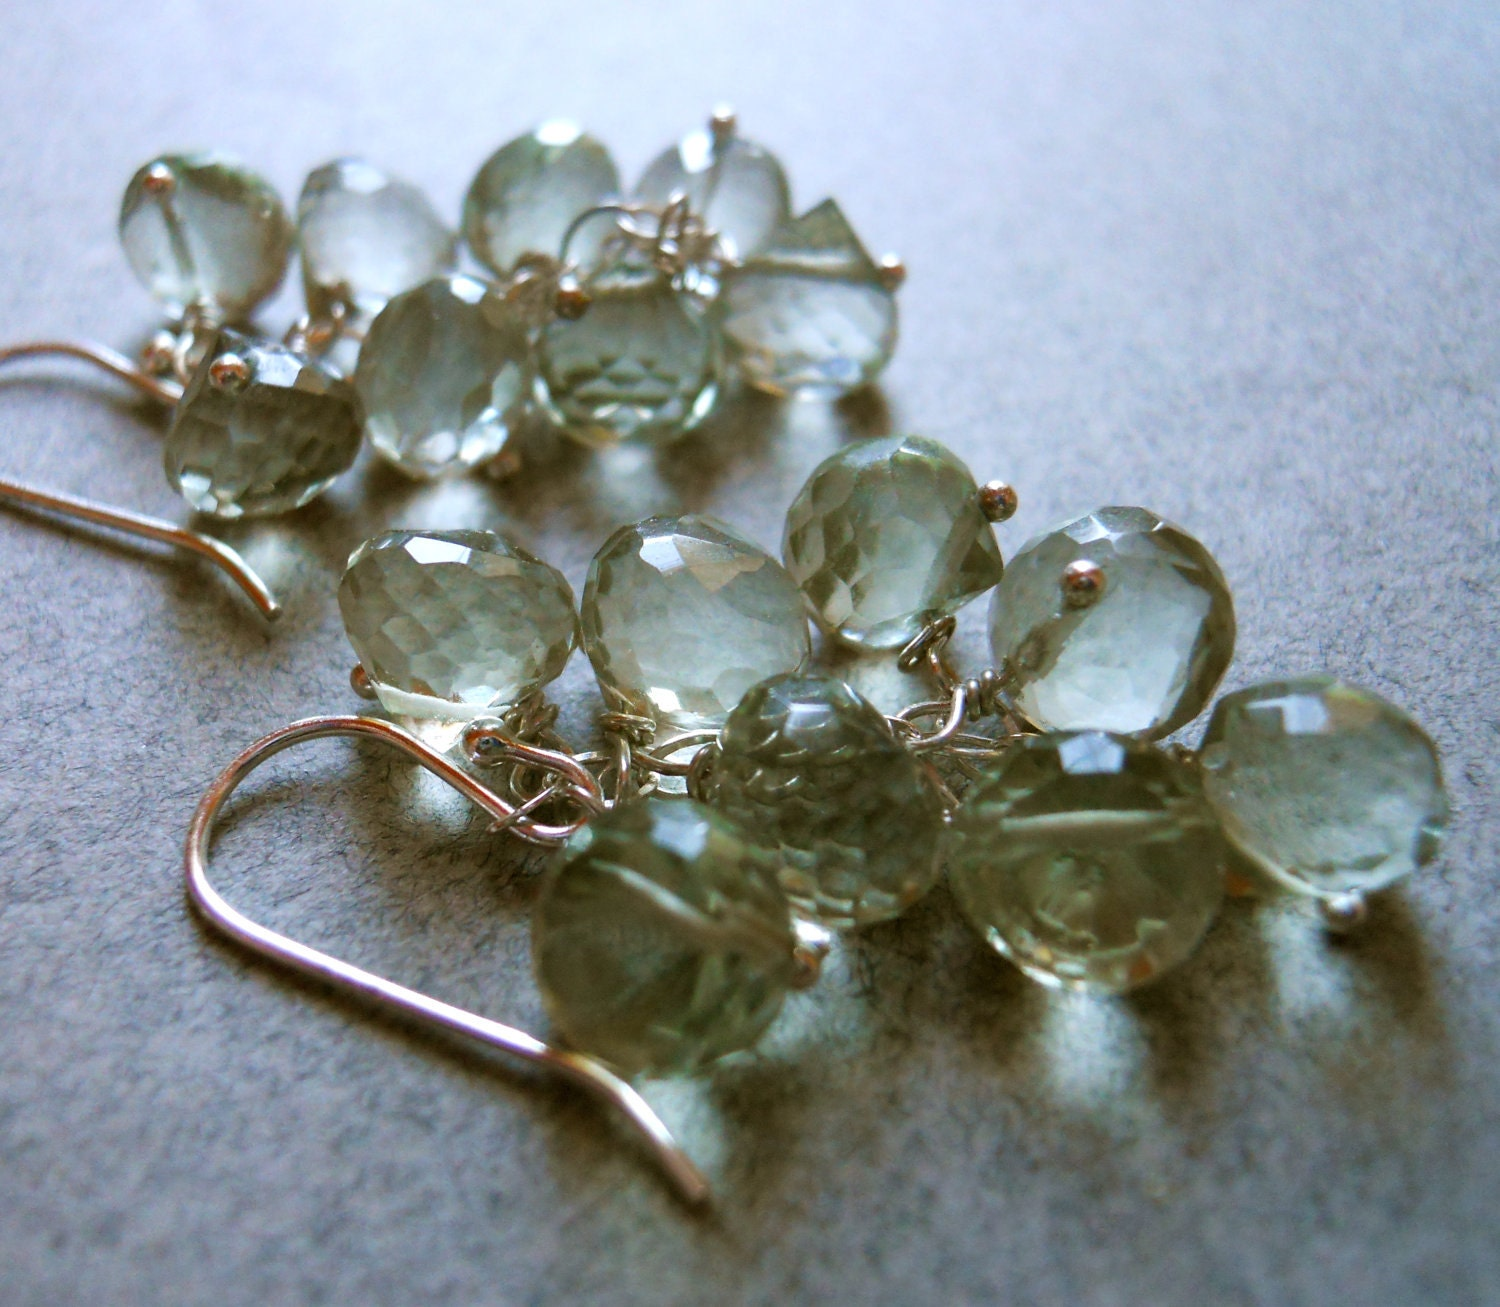 Green amethyst Green Eyed Glamour Girl earrings - $59.00 USD